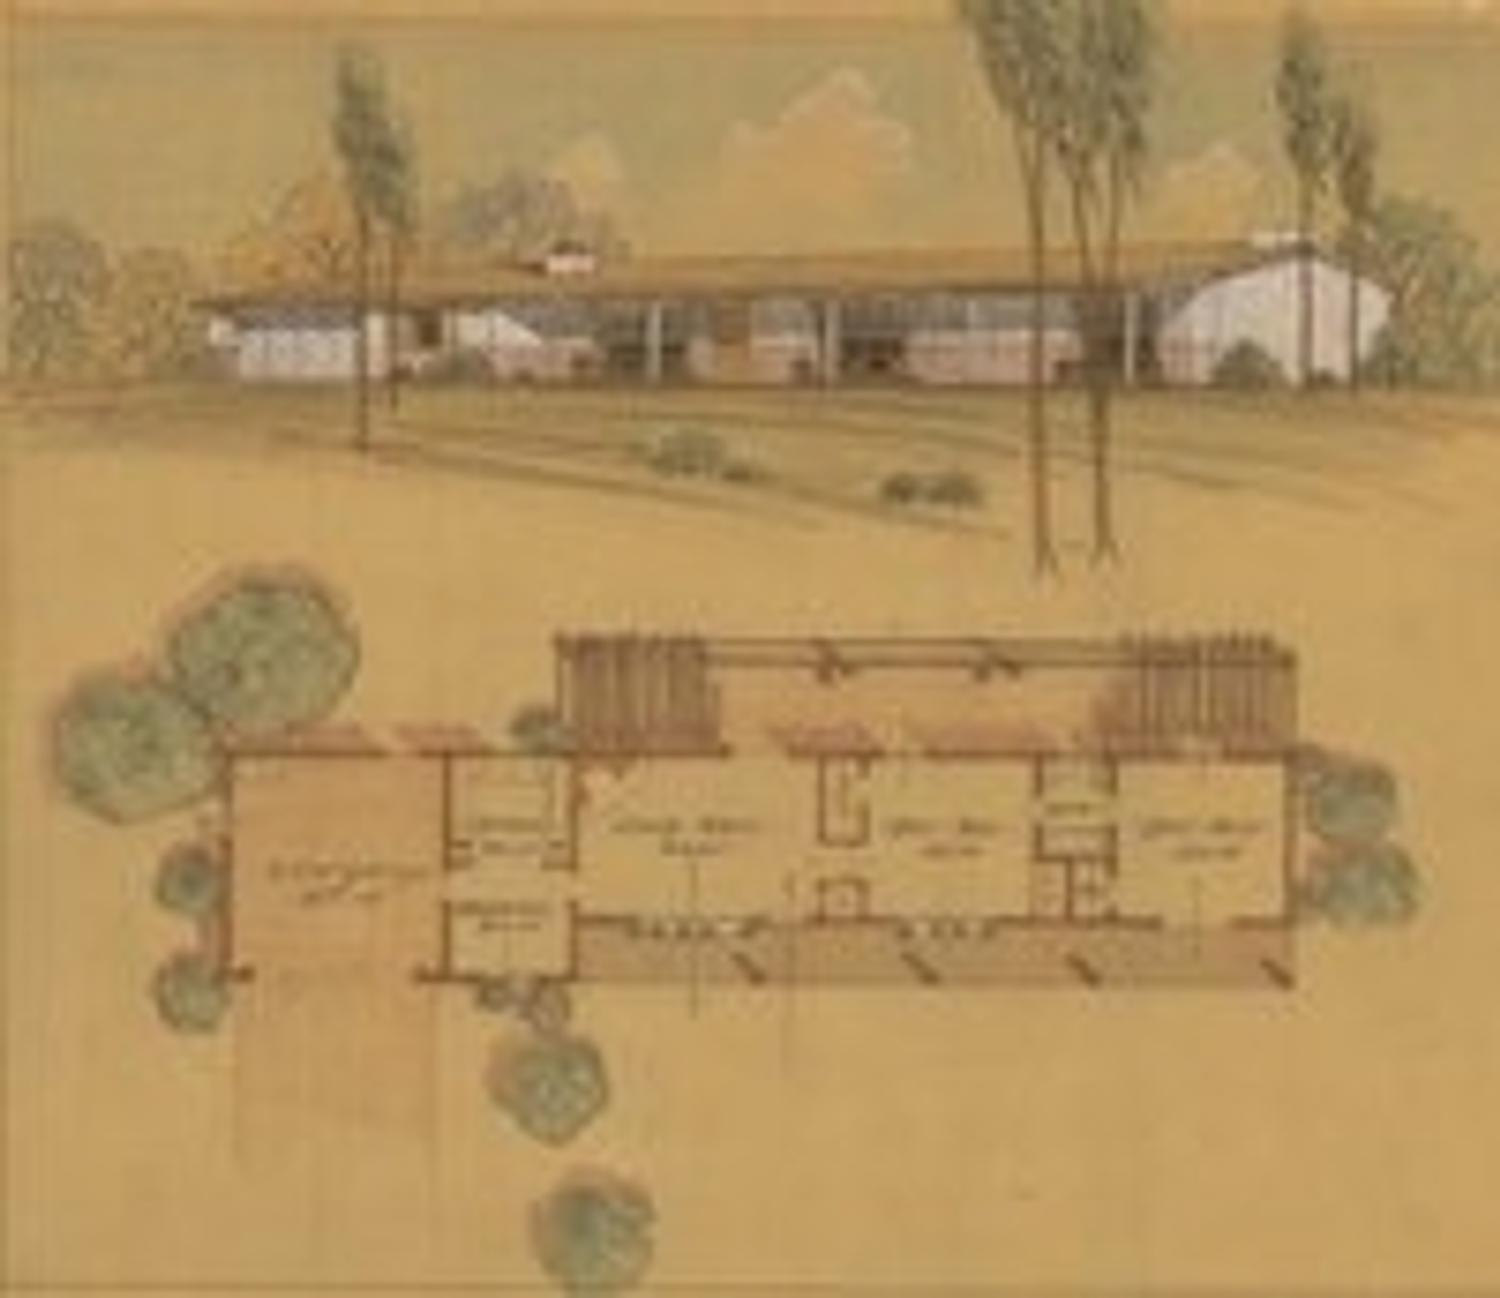 Cliff may ranch house plans home design and style Cliff may house plans